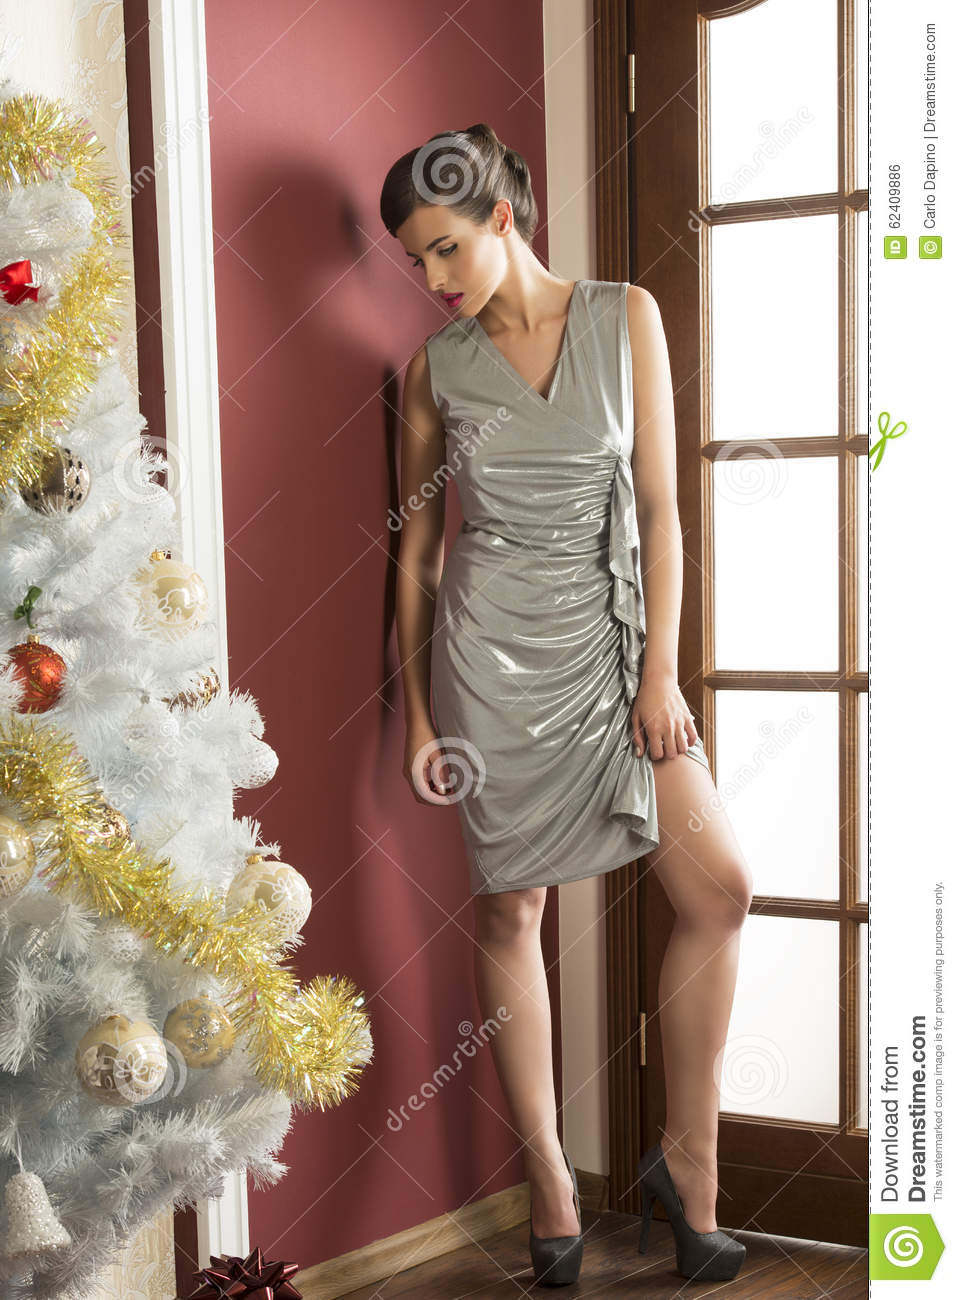 daefbc4d852b1 Pretty elegant brunette girl with silver dress, hair-style and heels posing  near decorated christmas tree. xmas time